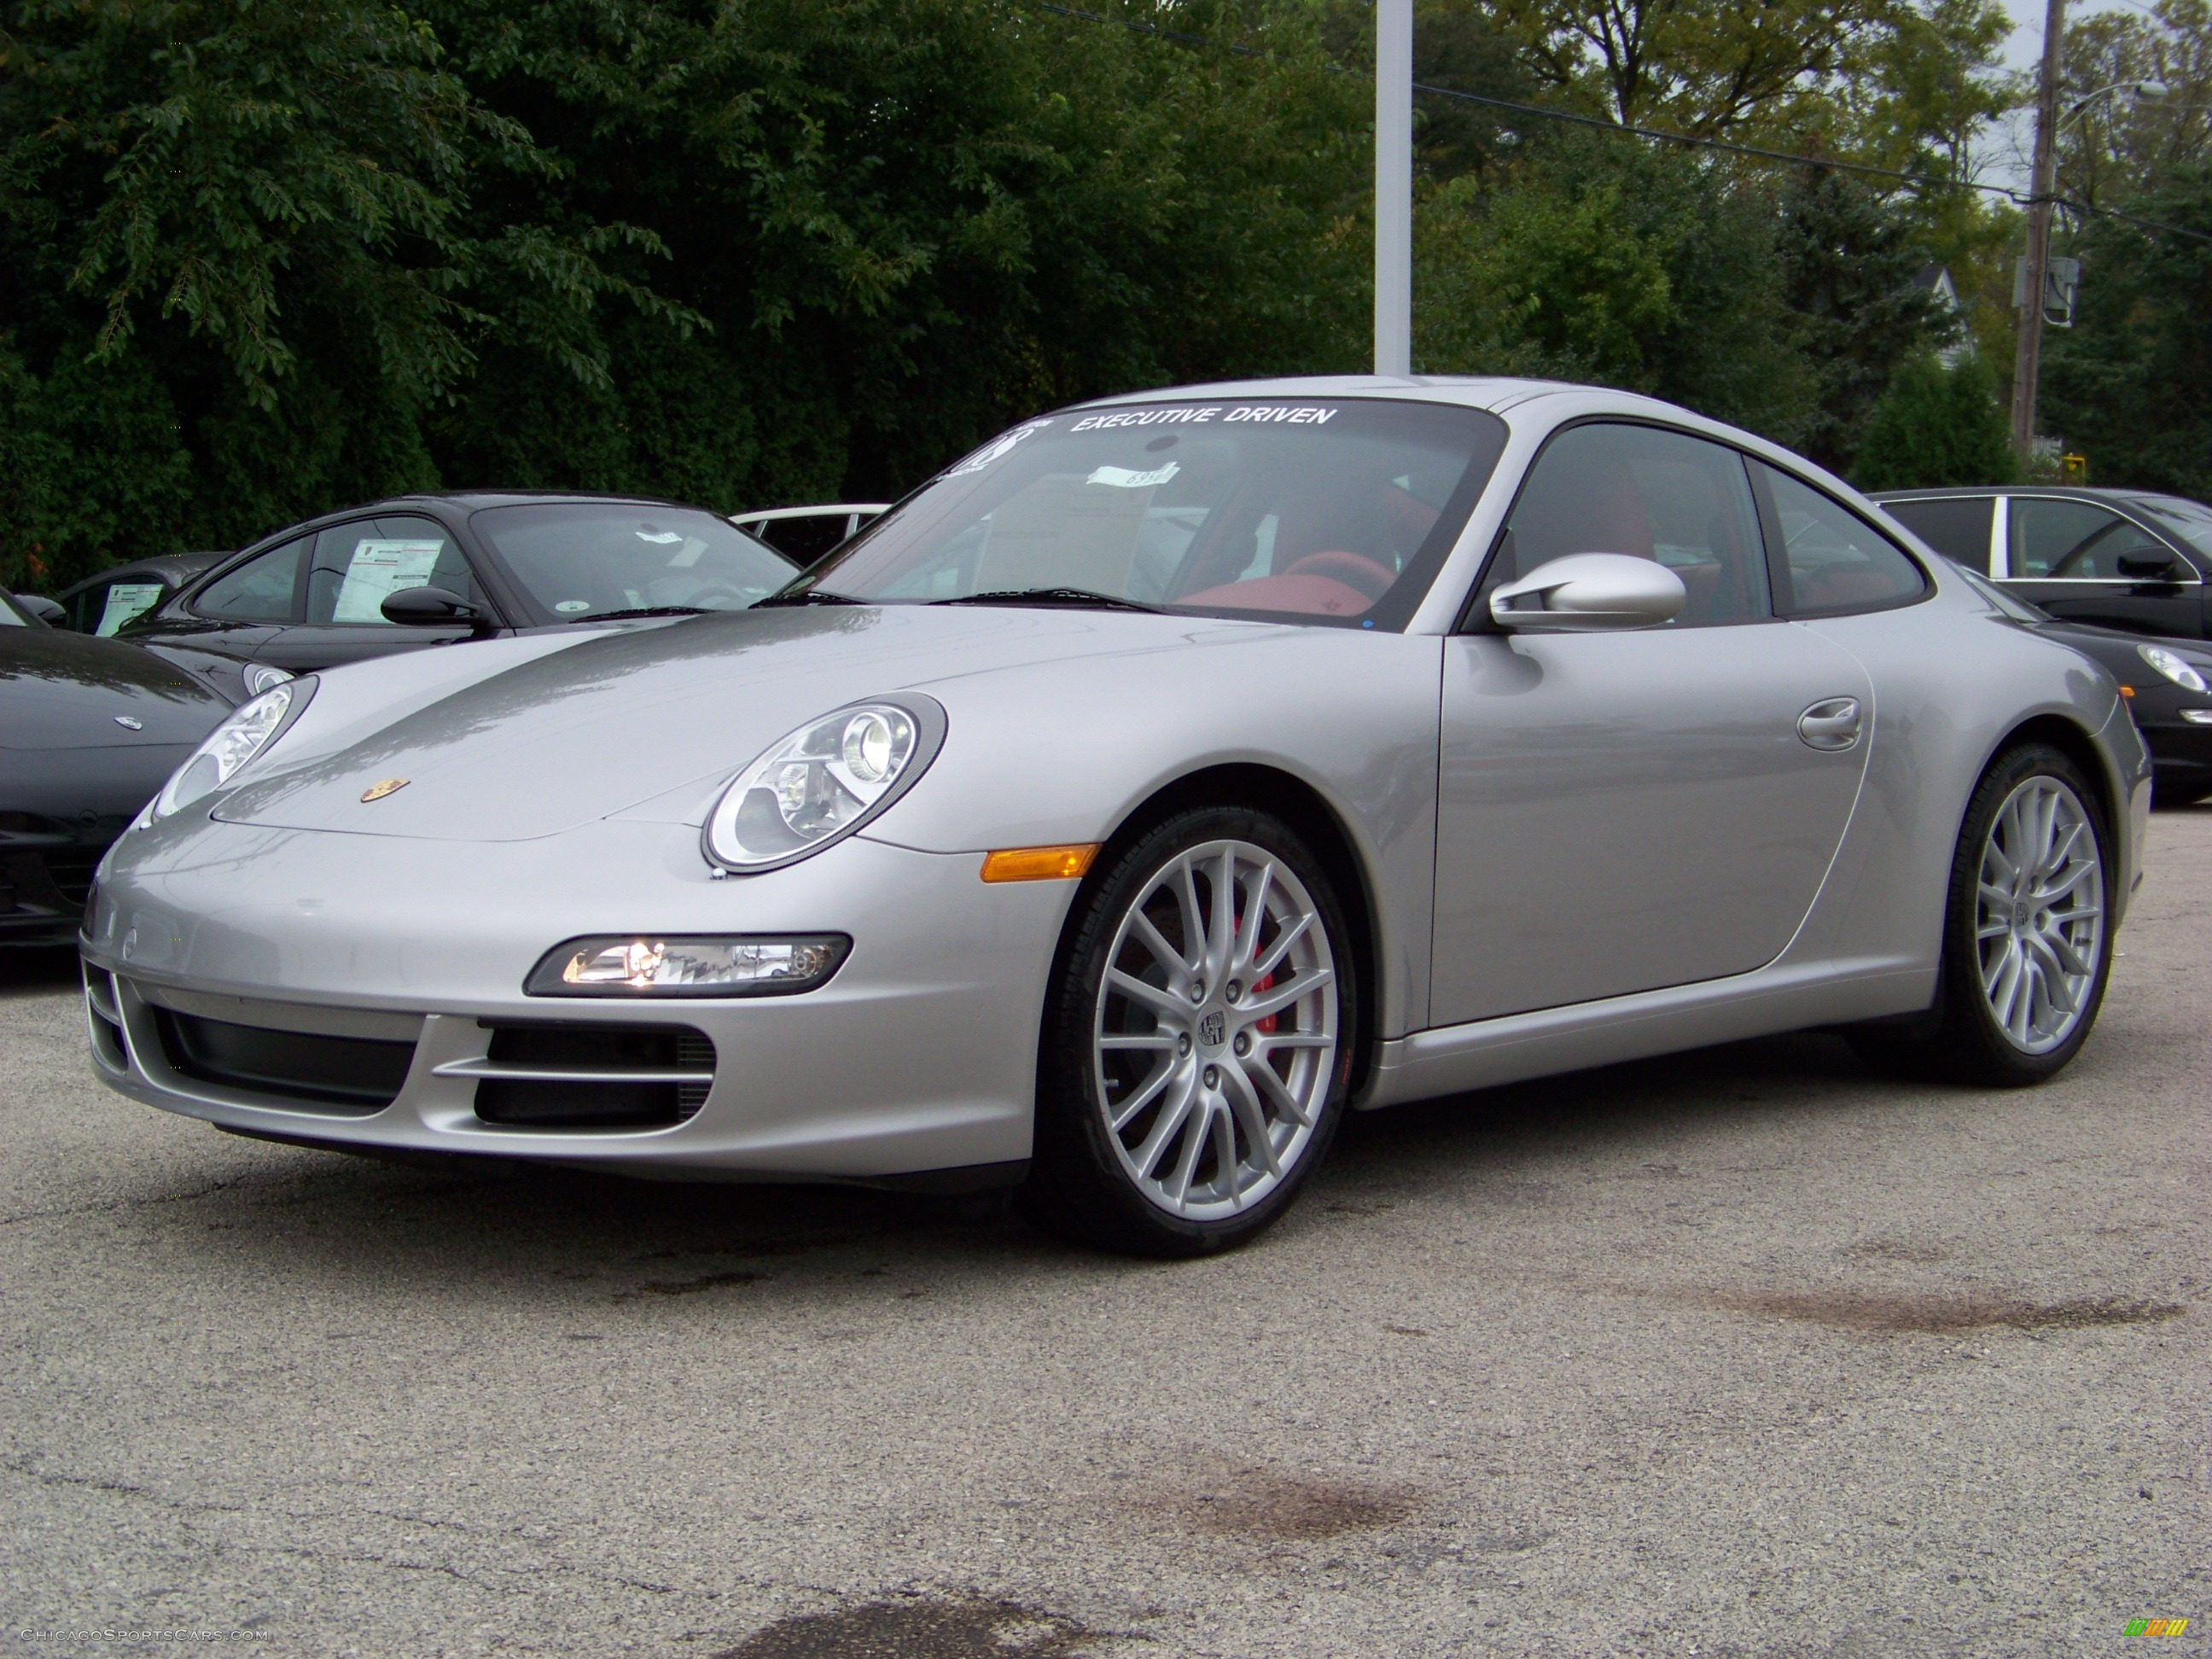 2008 porsche 911 carrera s coupe in arctic silver metallic 731118. Black Bedroom Furniture Sets. Home Design Ideas